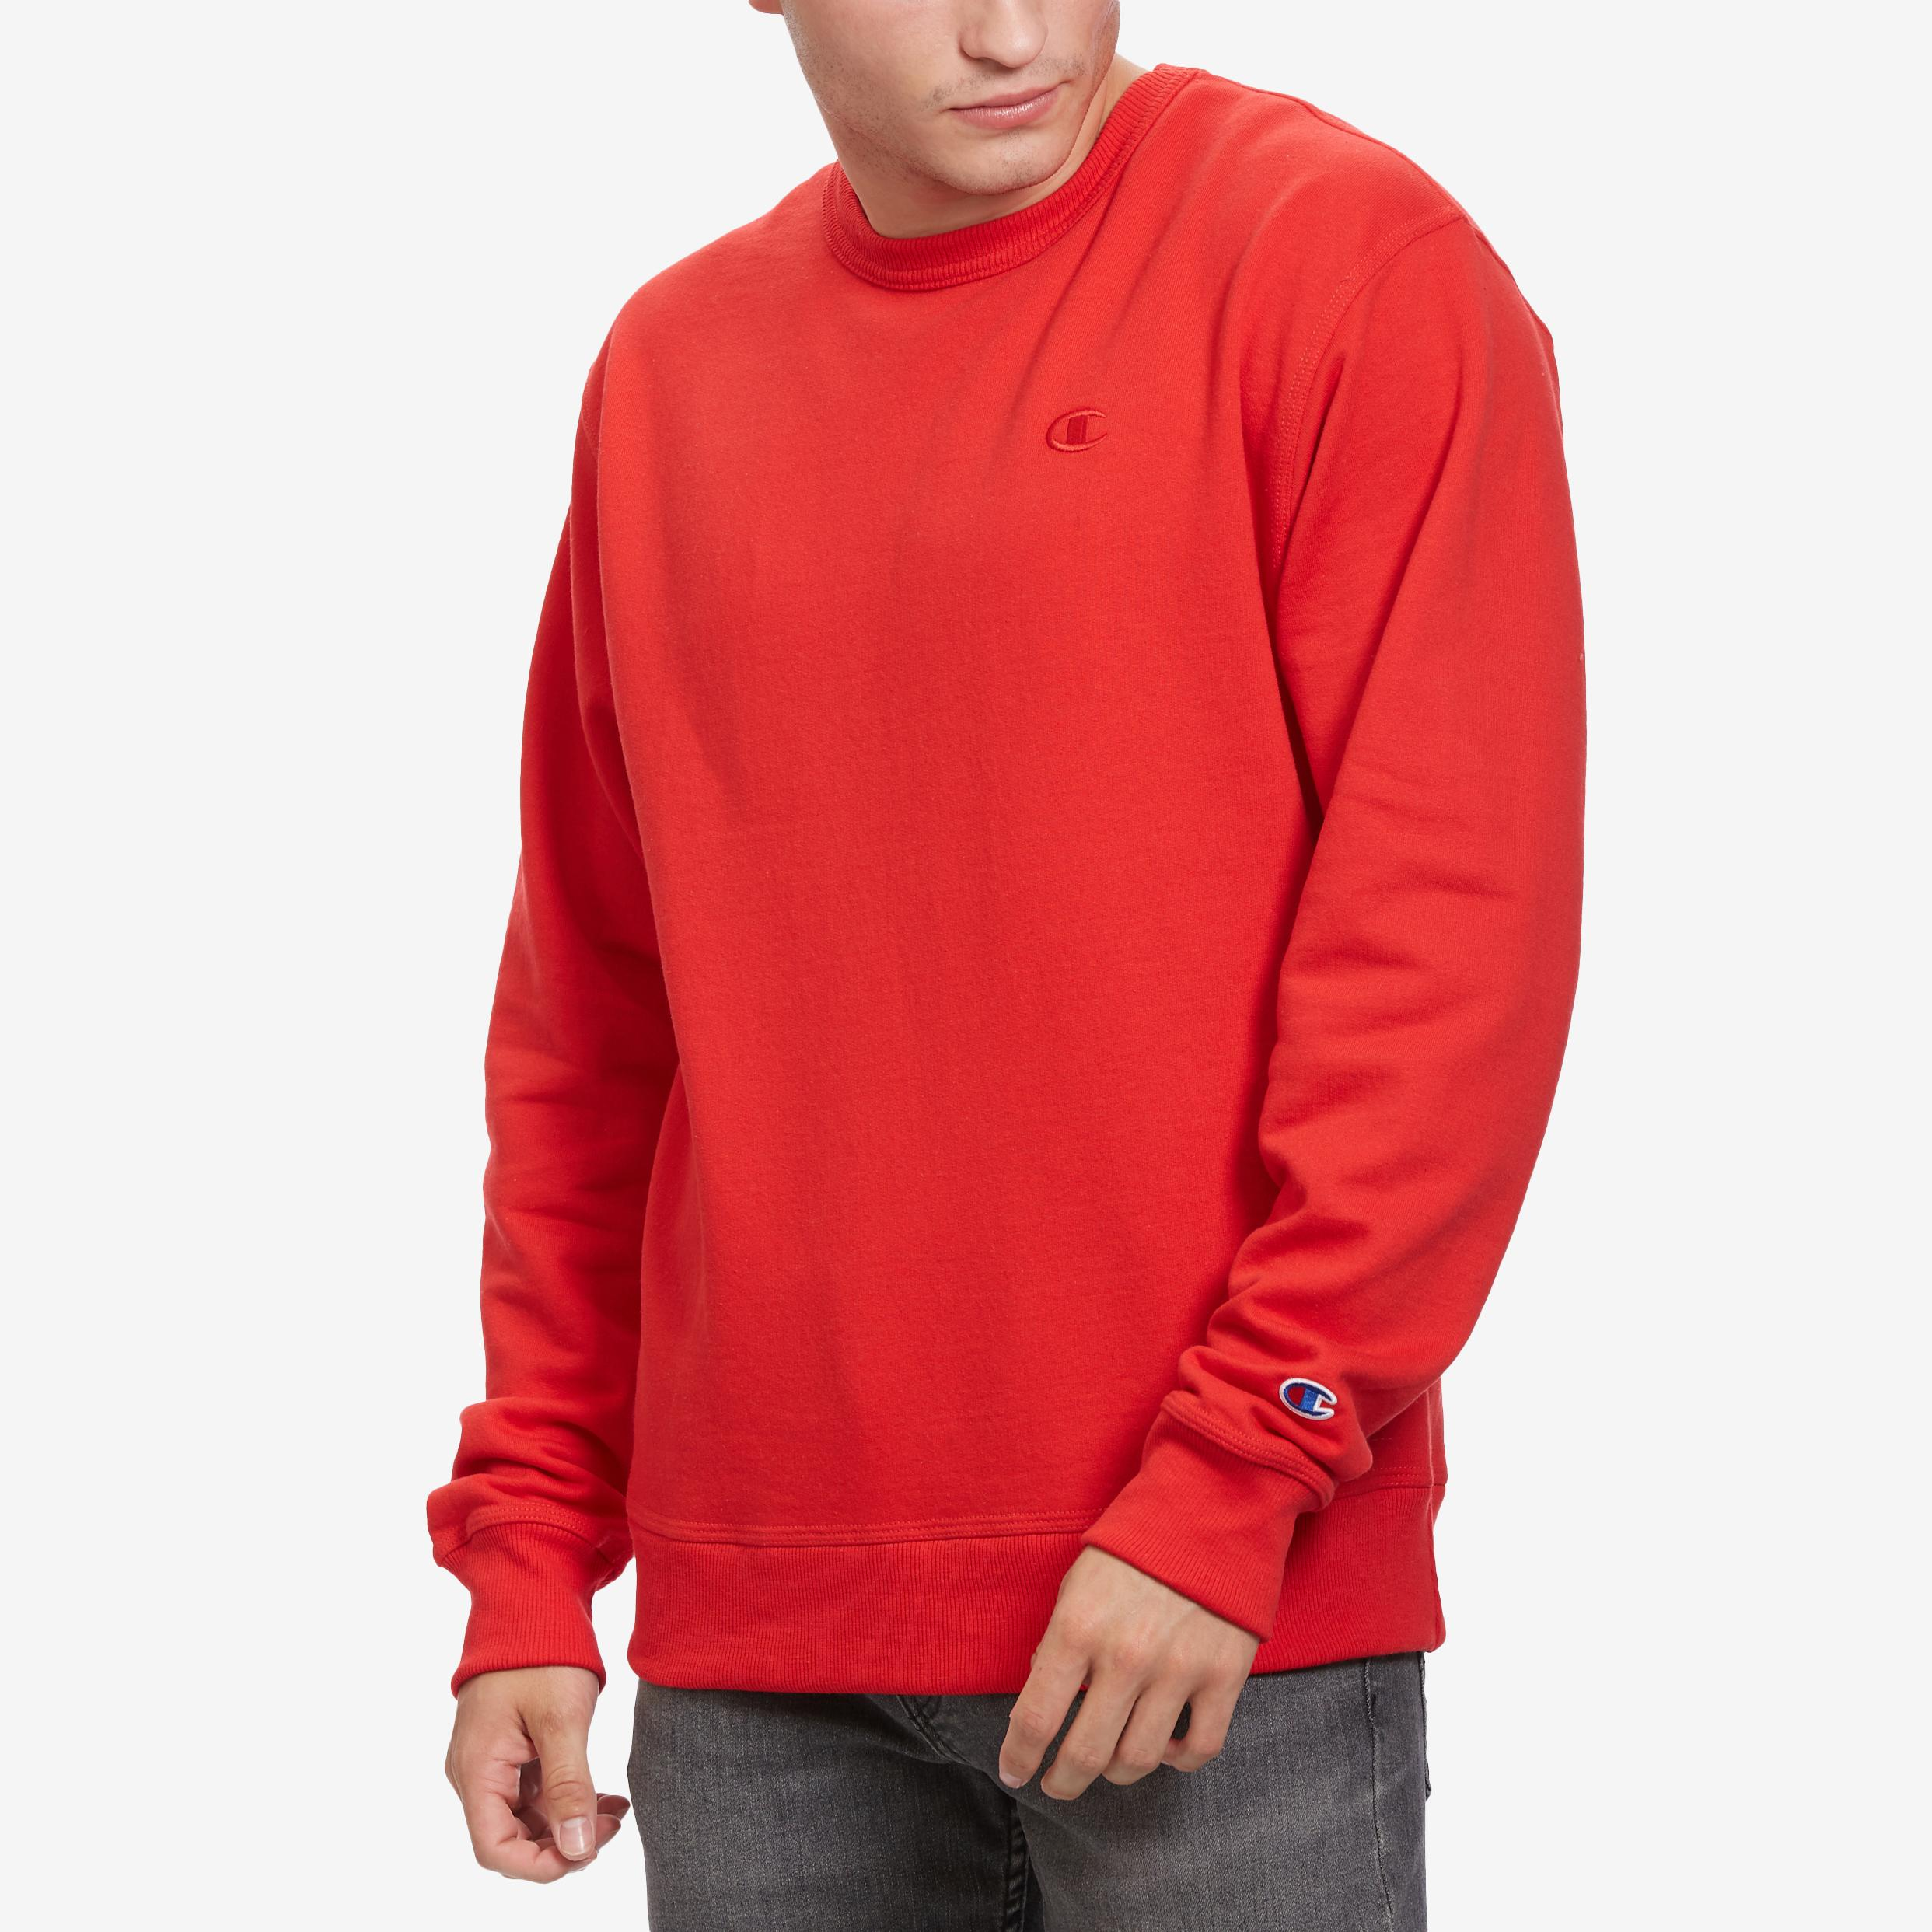 Men's Powerblend Sweats Pullover Crew